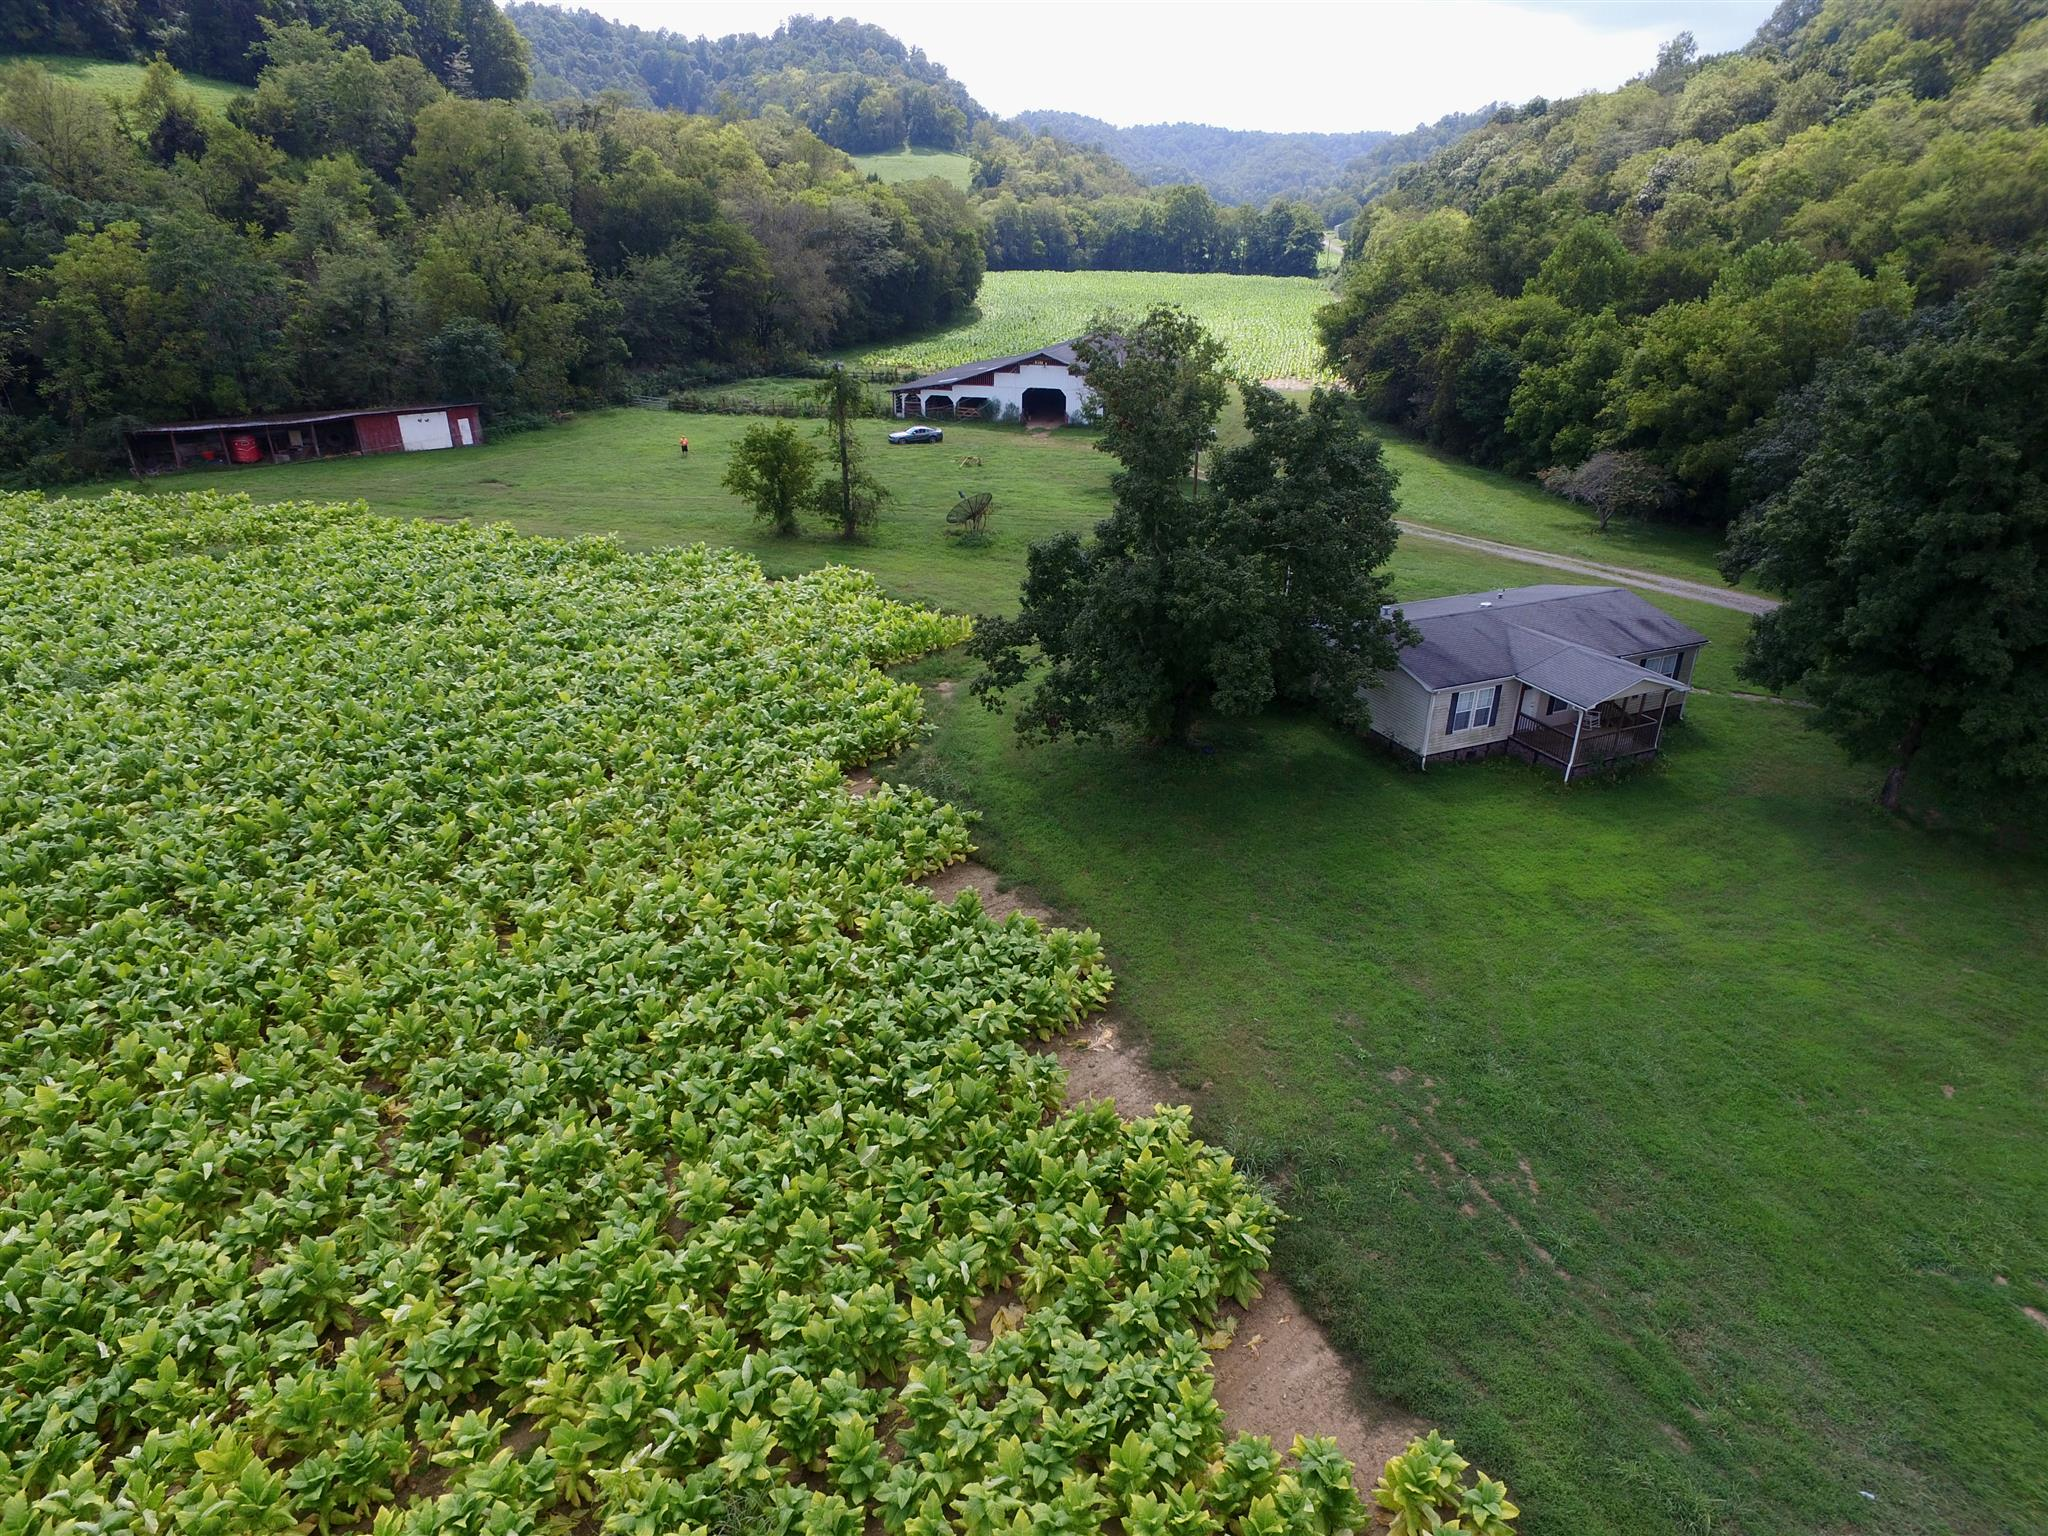 187 South Fork Rd, Whitleyville, TN 38588 - Whitleyville, TN real estate listing